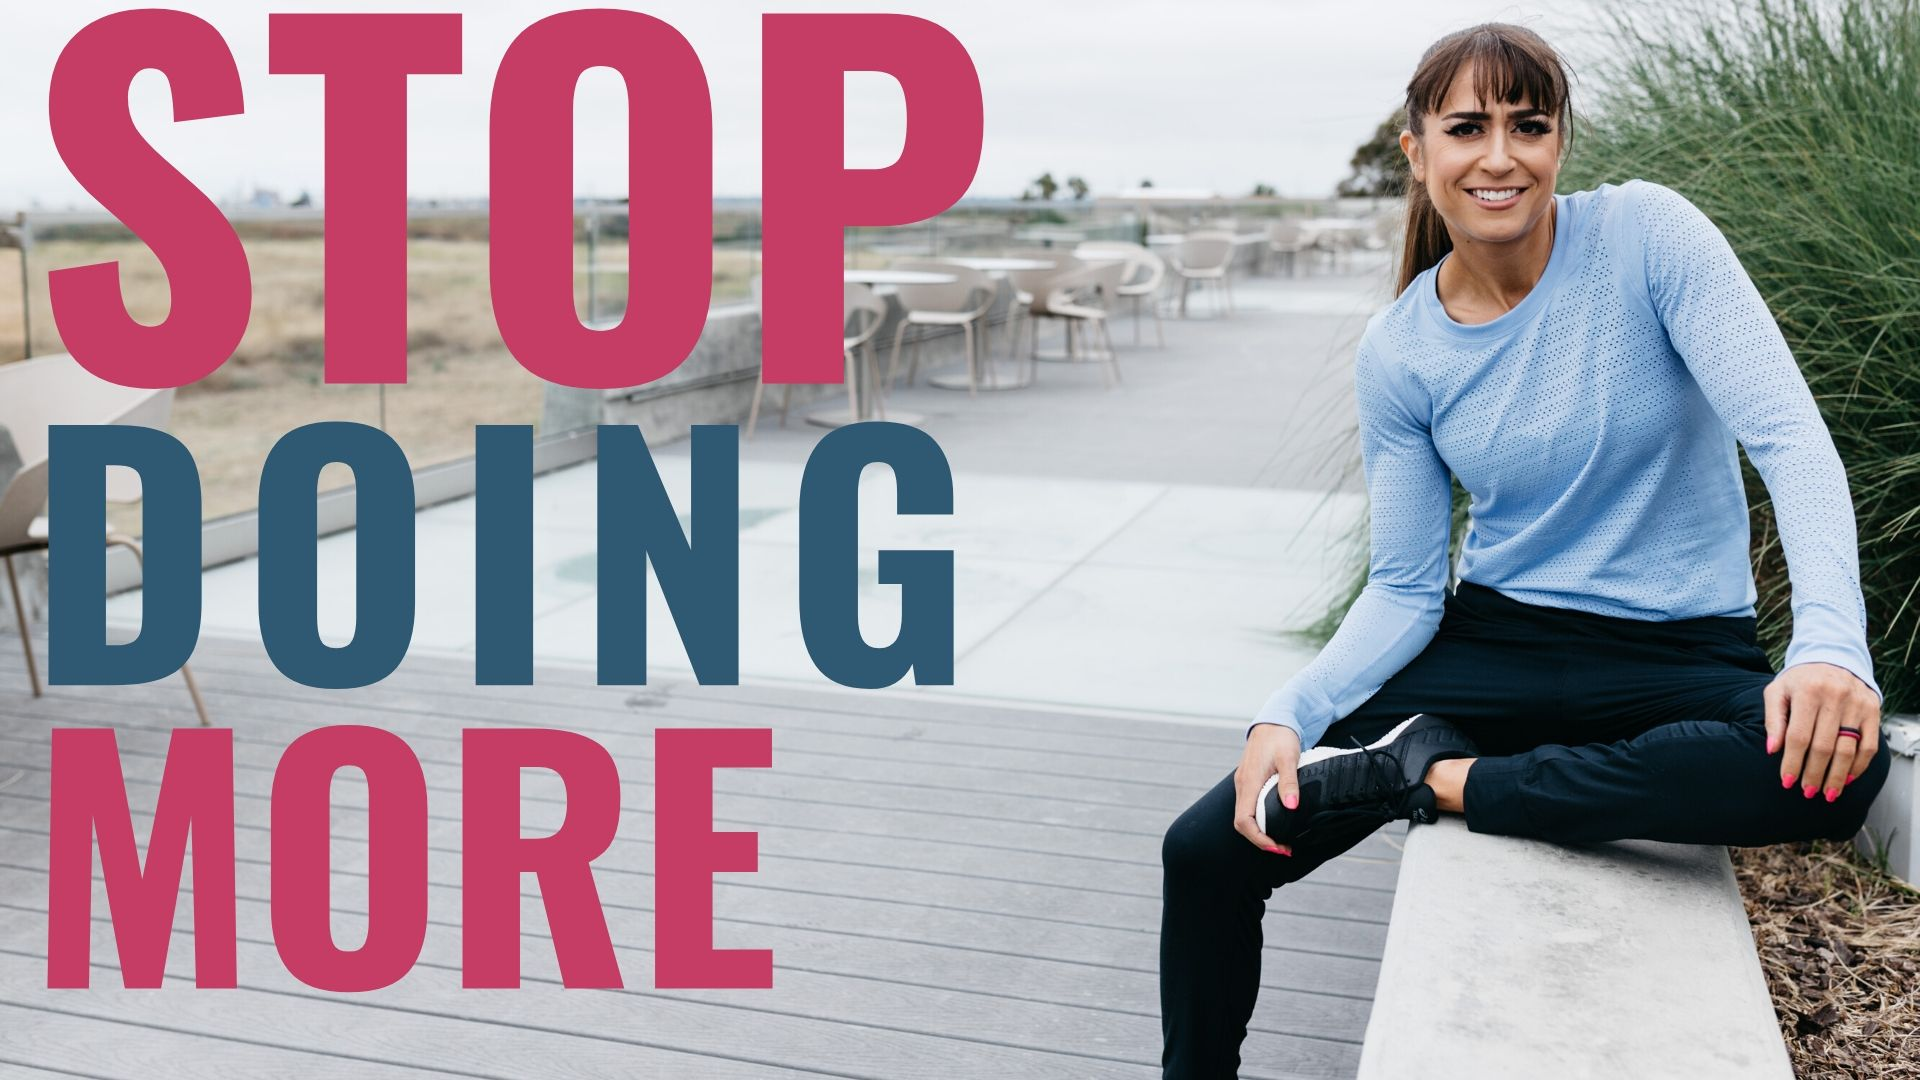 Stop Doing More Redefining Strength